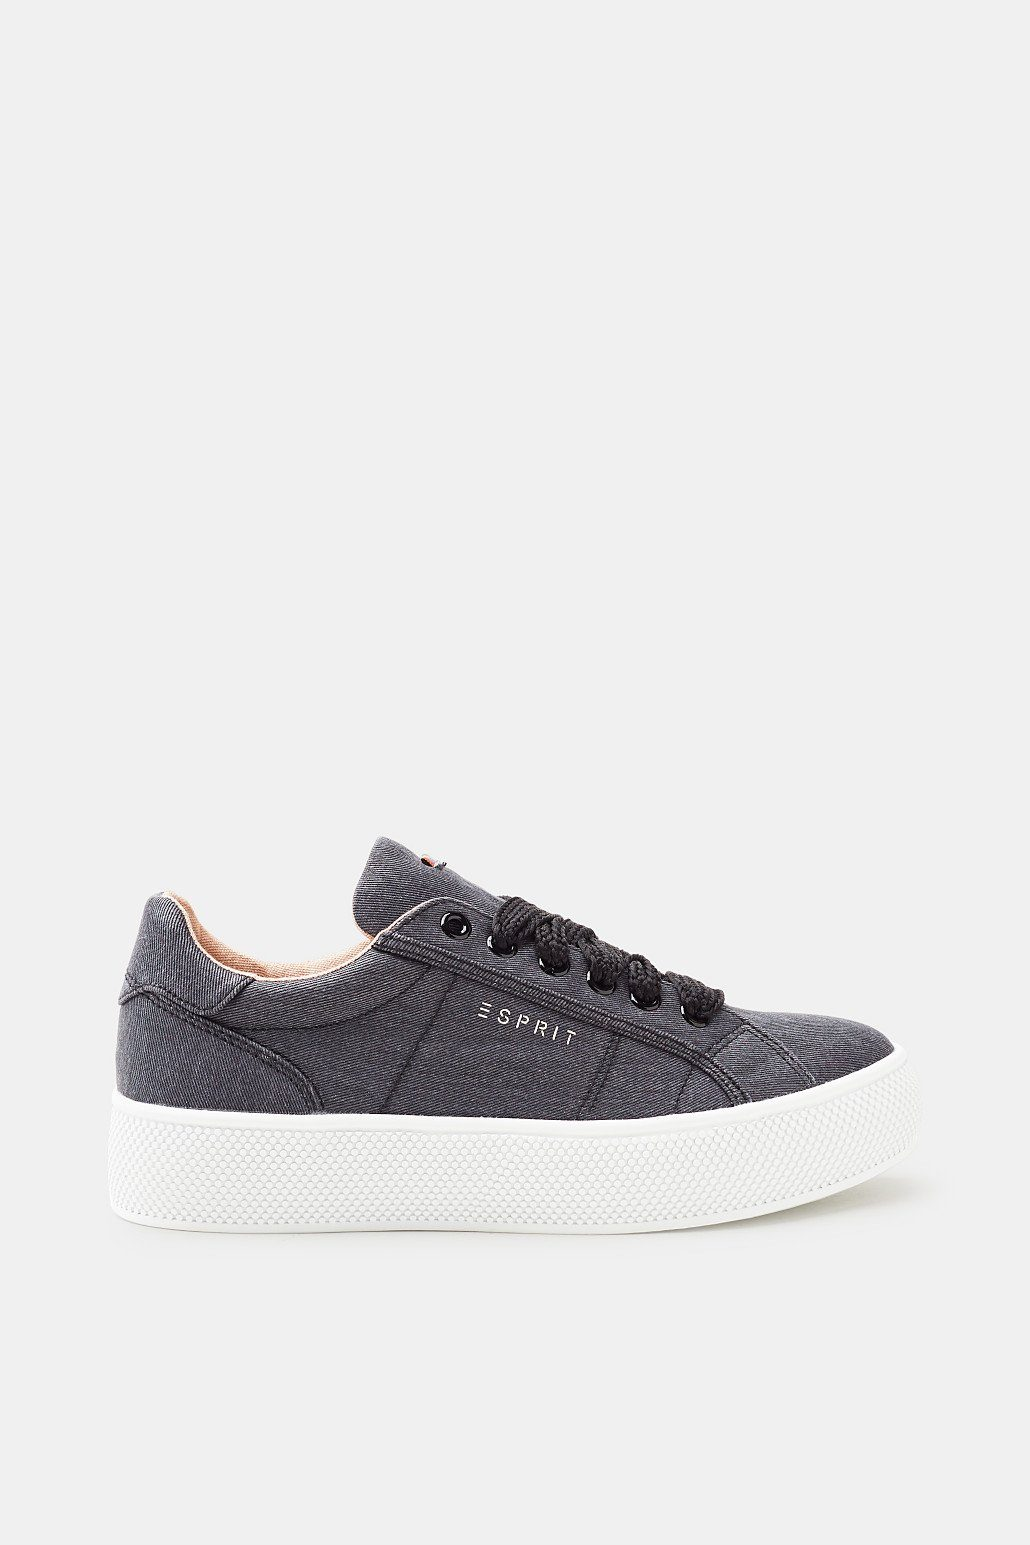 Esprit Retro-Sneaker in Leder-Optik für Damen, Größe 37, Medium Grey